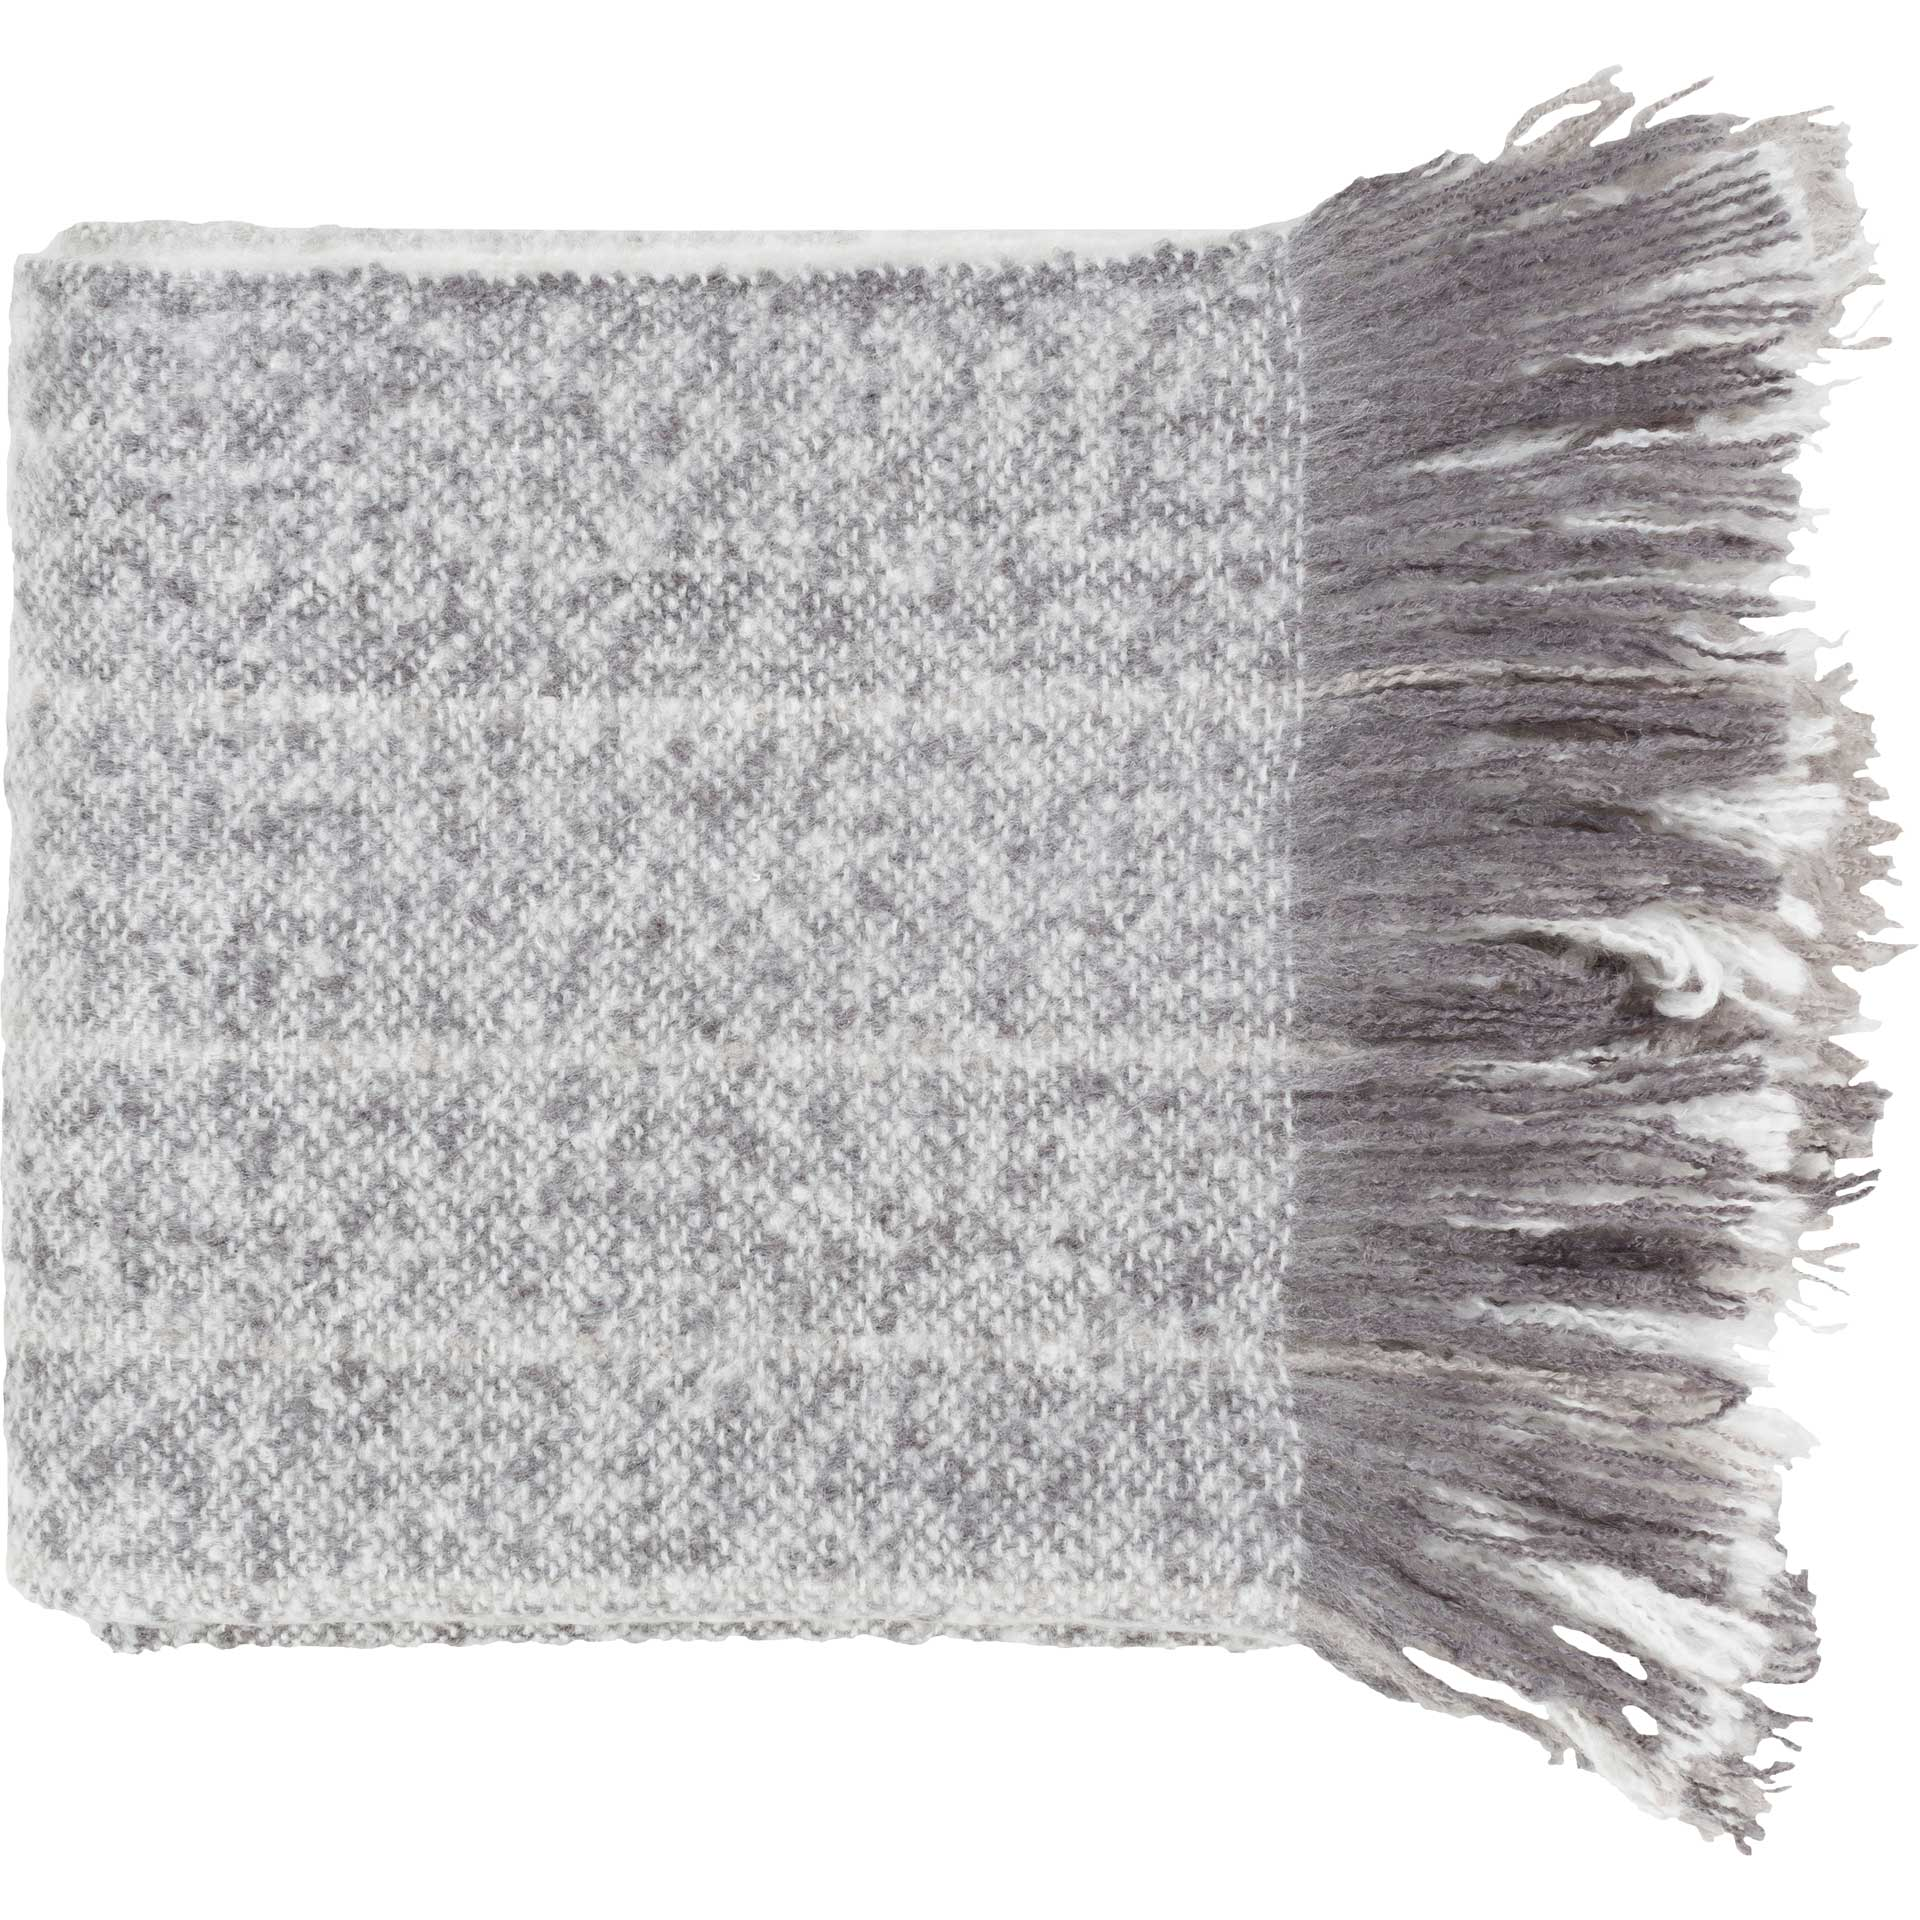 Arham Throw Medium Gray/White/Charcoal